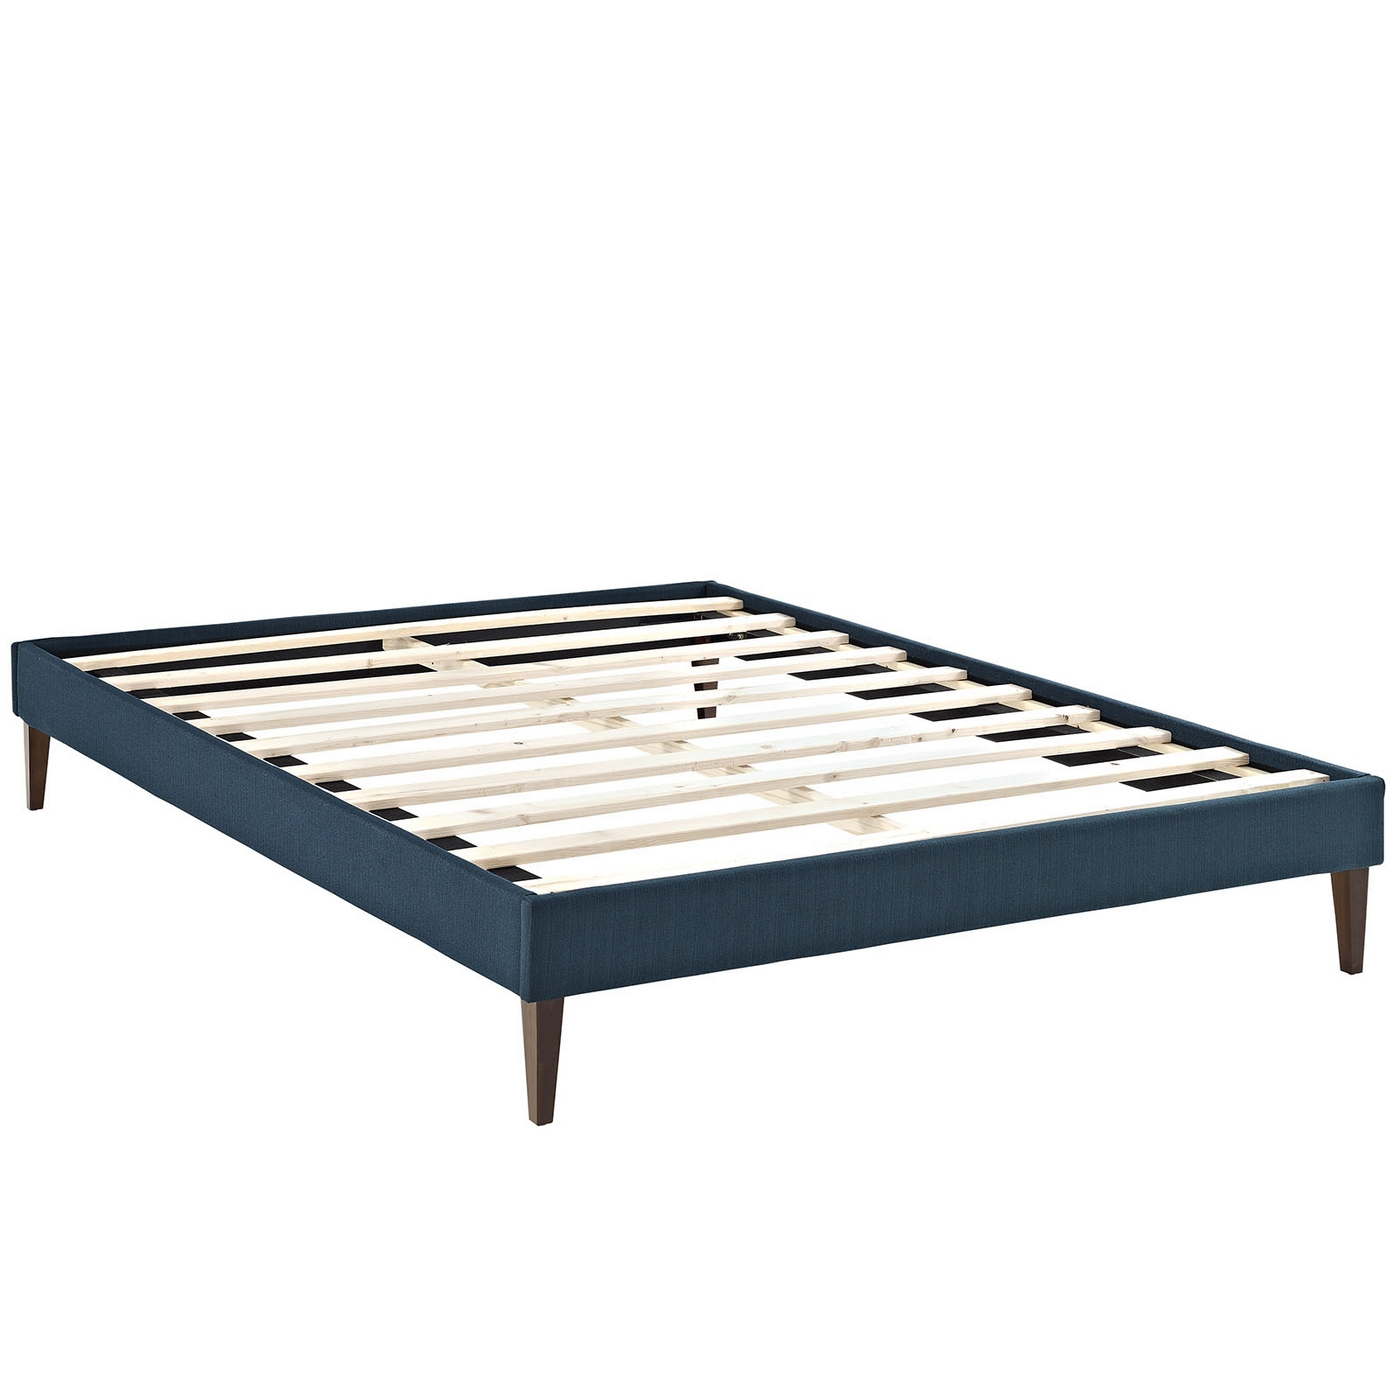 sharon modern queen fabric platform bed frame with square legs azure